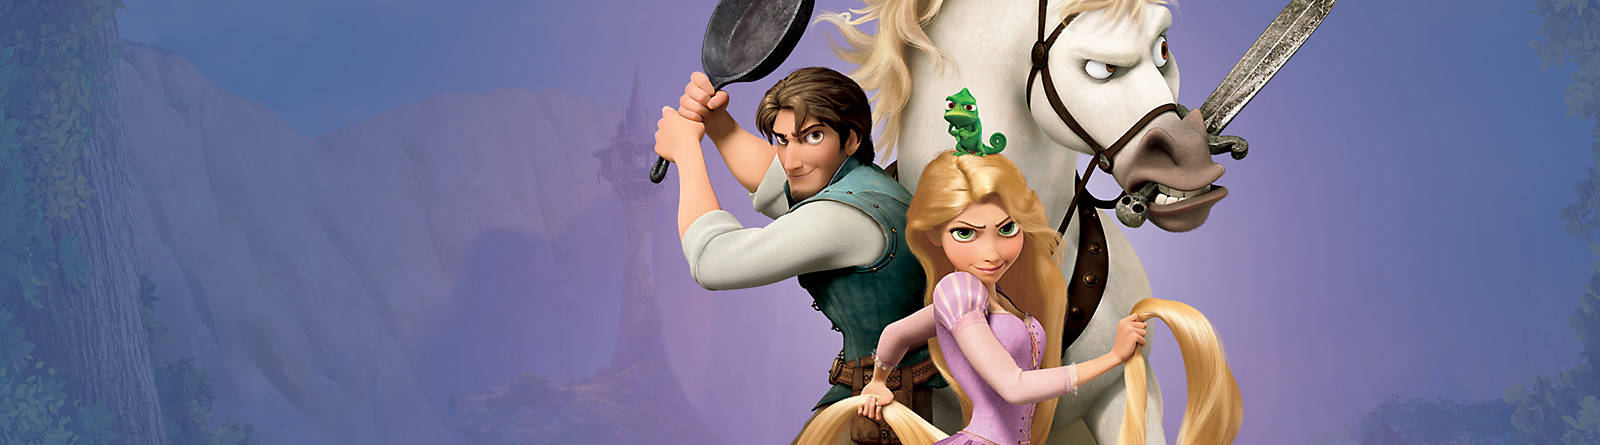 Tangled Let your hair down with our Rapunzel costumes, toys, playsets, clothing, collectibles and more